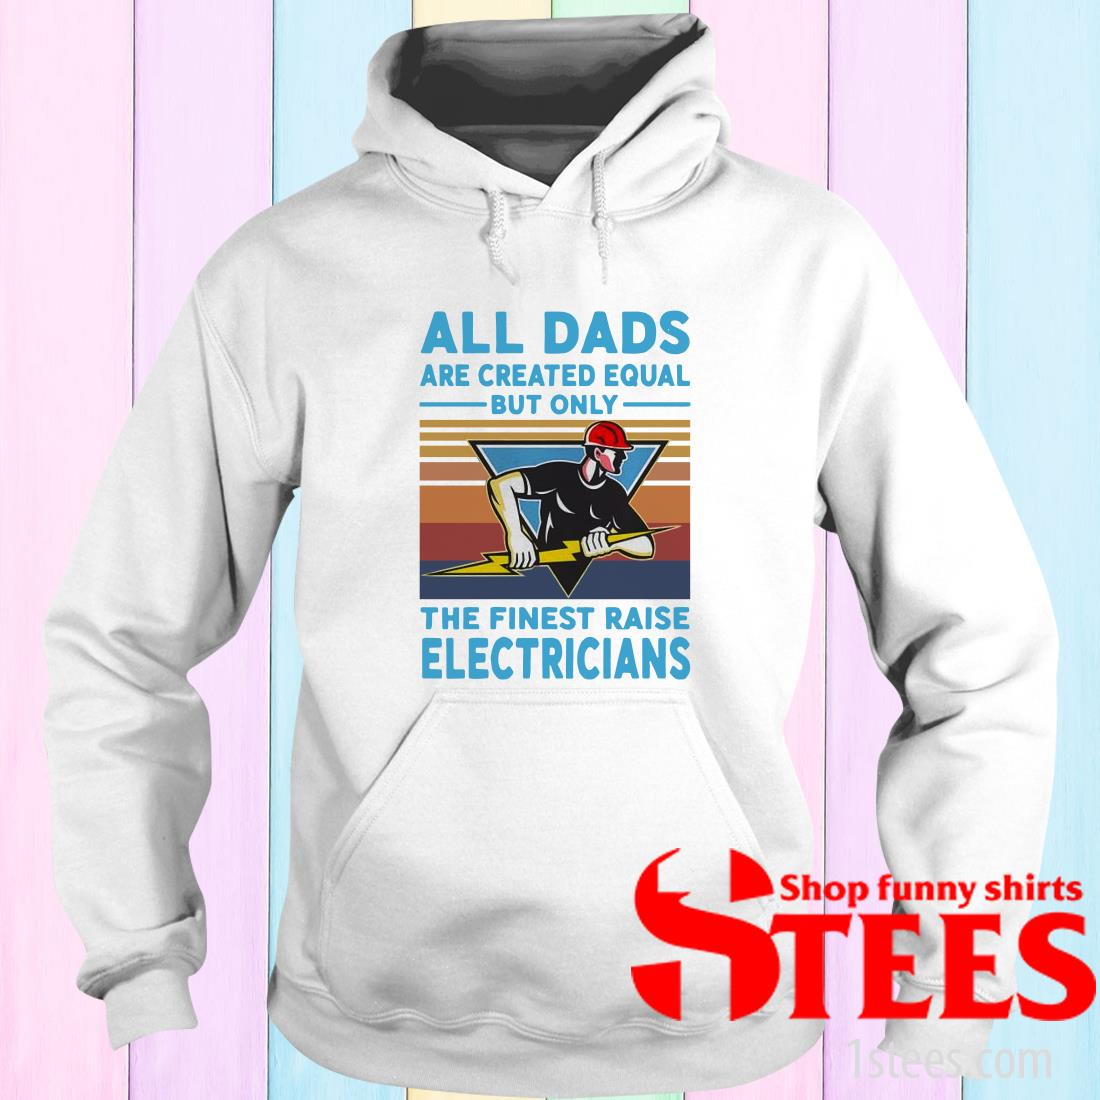 All Dads Are Created Equal But Only The Finest Raise Electricians Vintage T-ShirtAll Dads Are Created Equal But Only The Finest Raise Electricians Vintage Hoodies